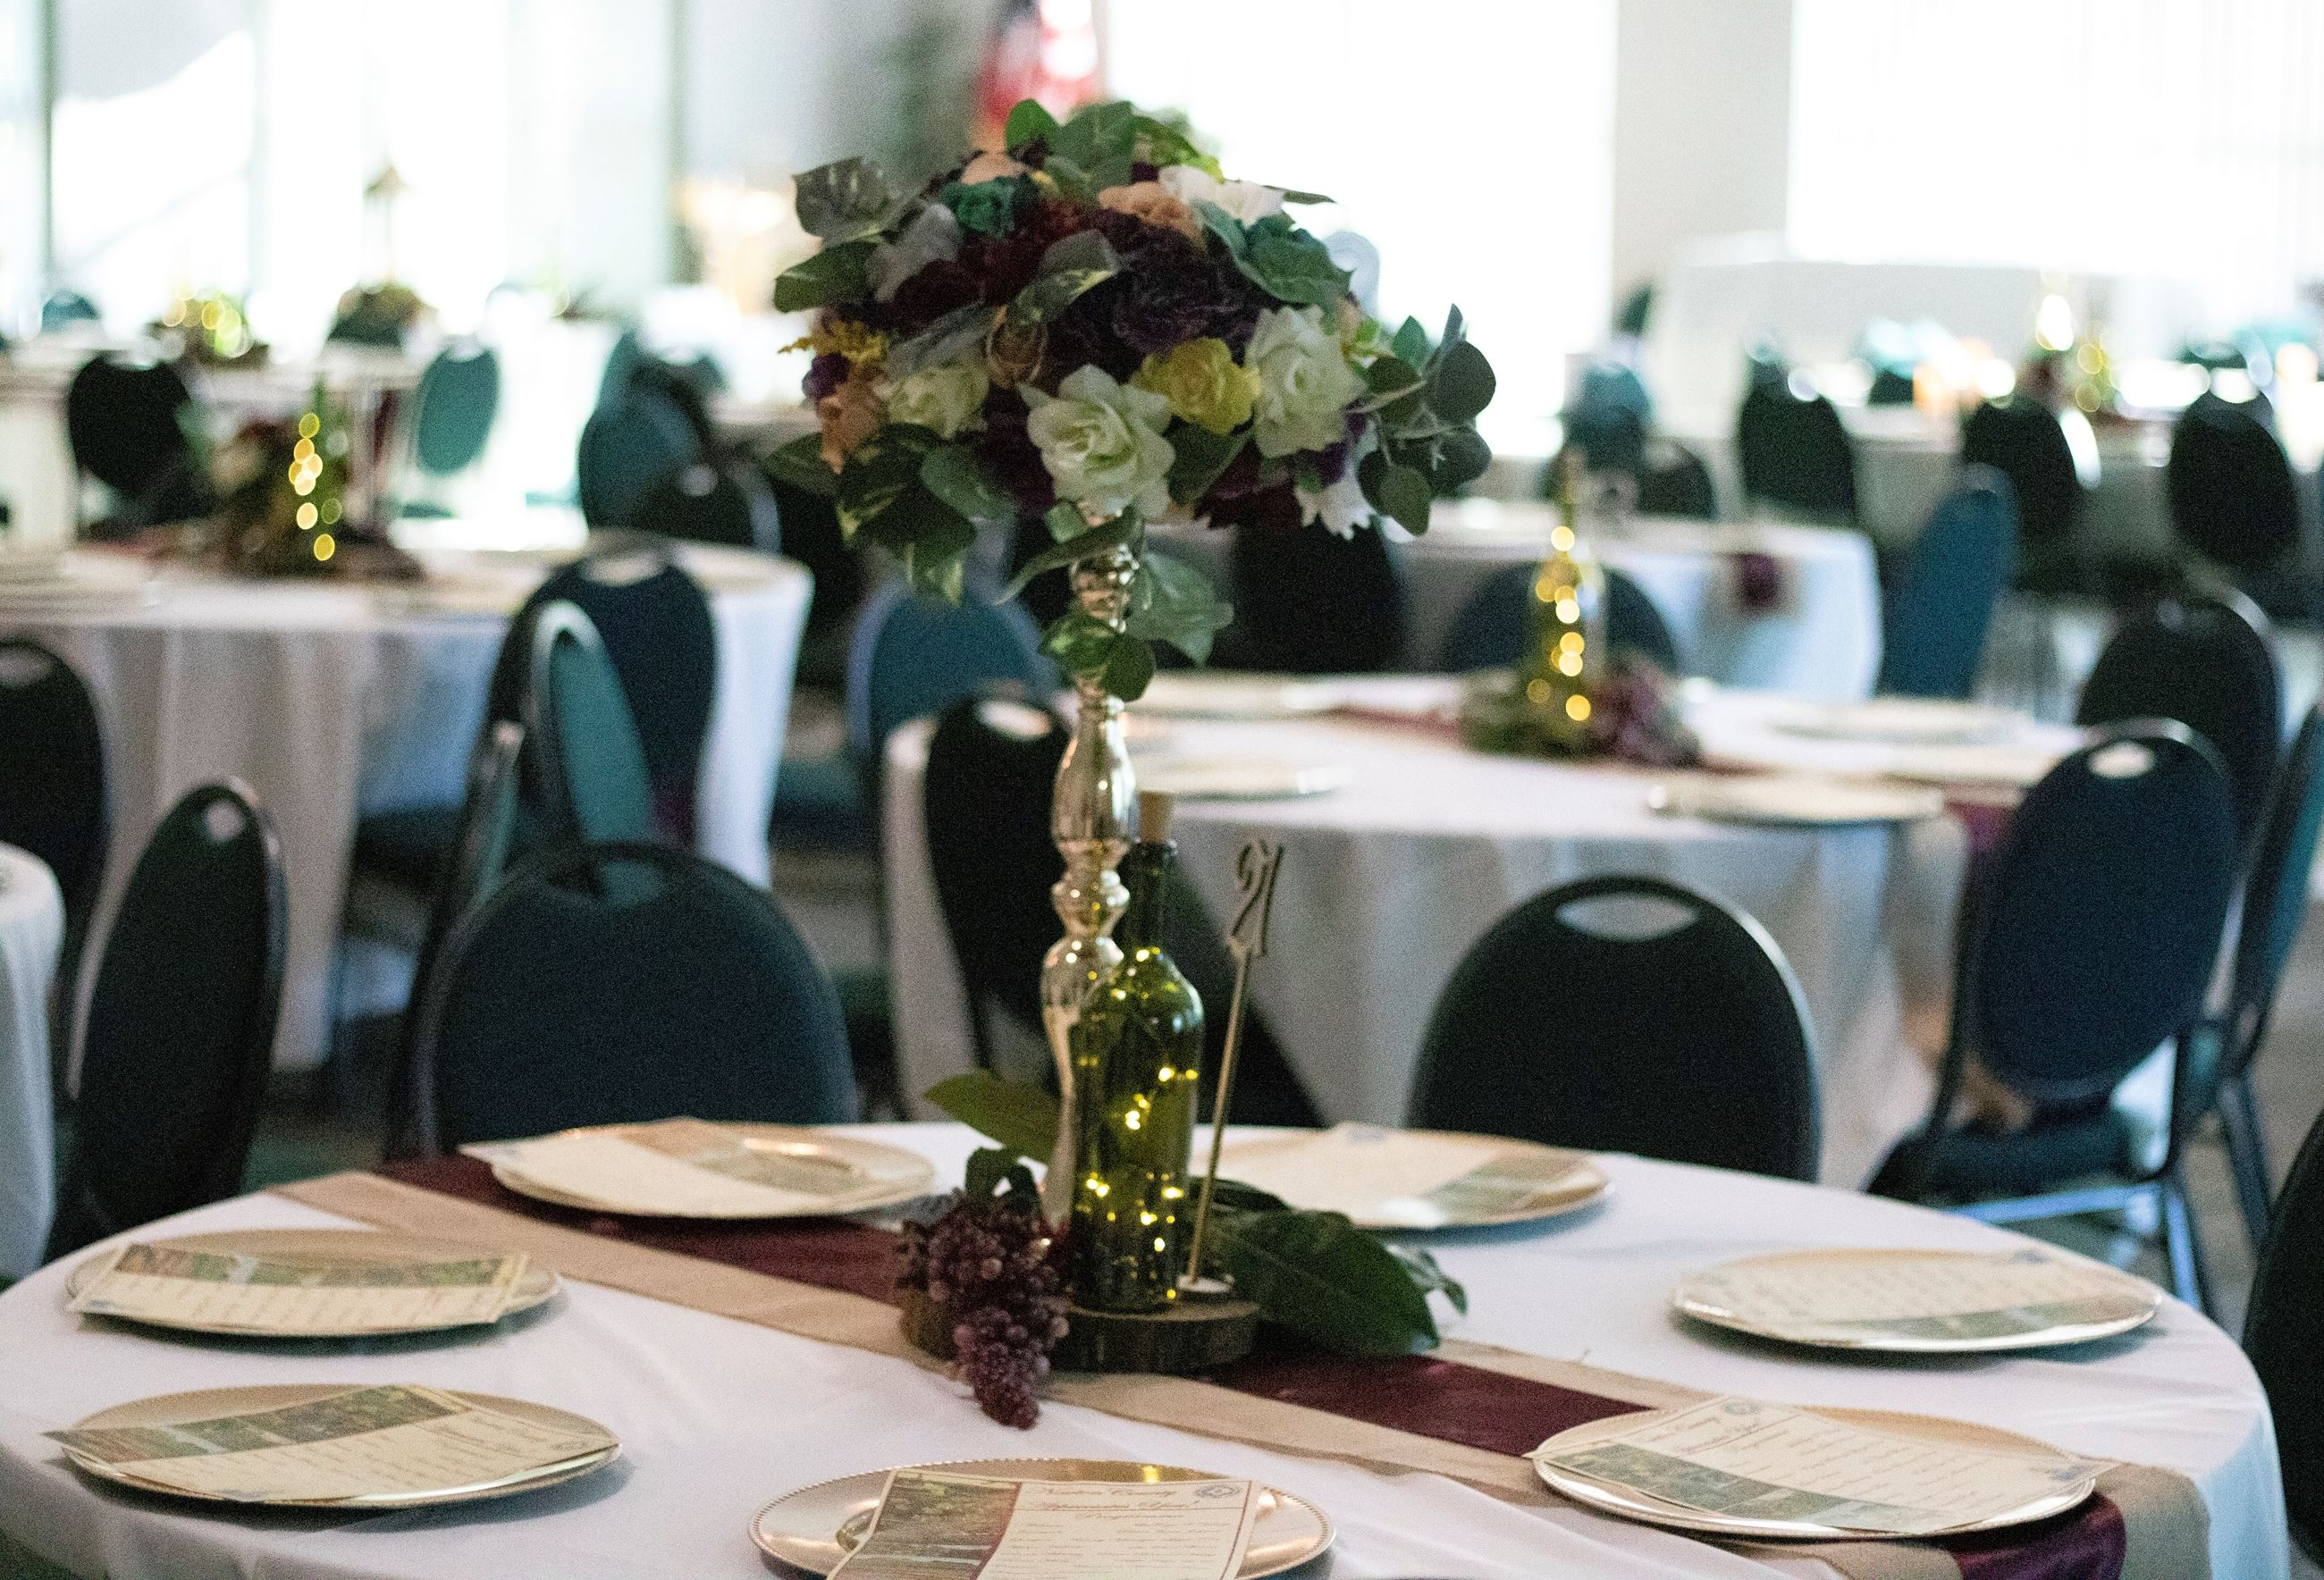 Image of Dinner decorations